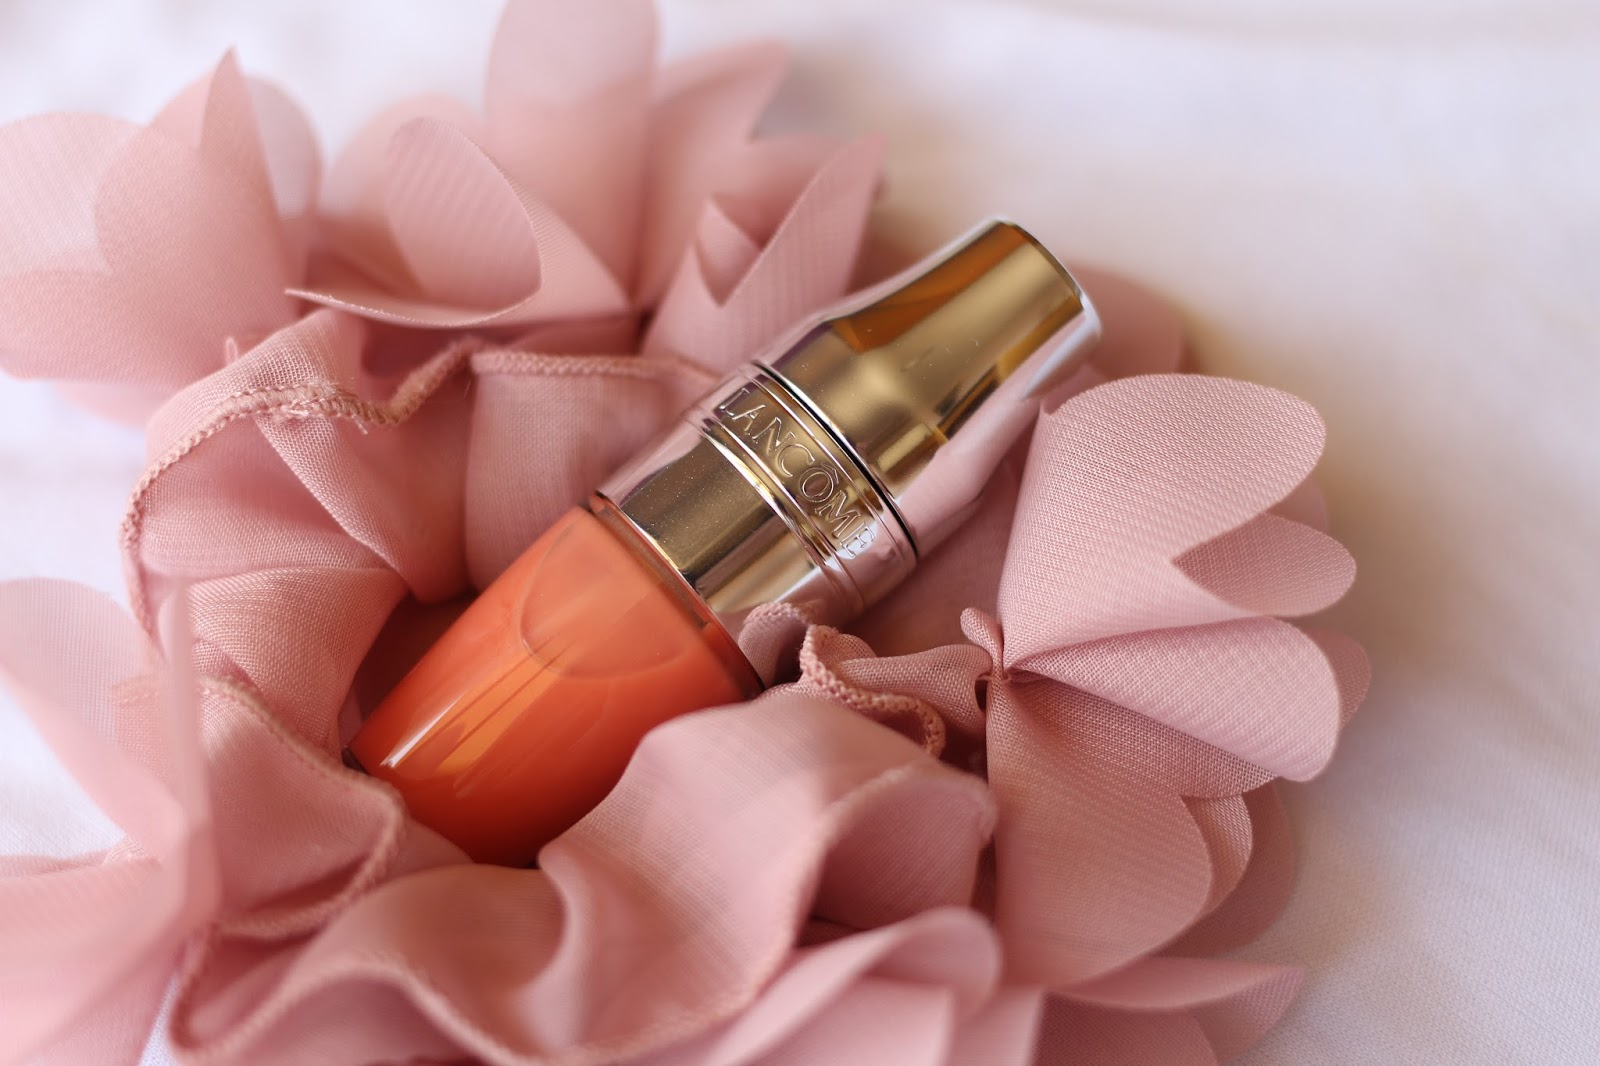 LANCOME JUICY SHAKERS SHOW ME THE HONEY